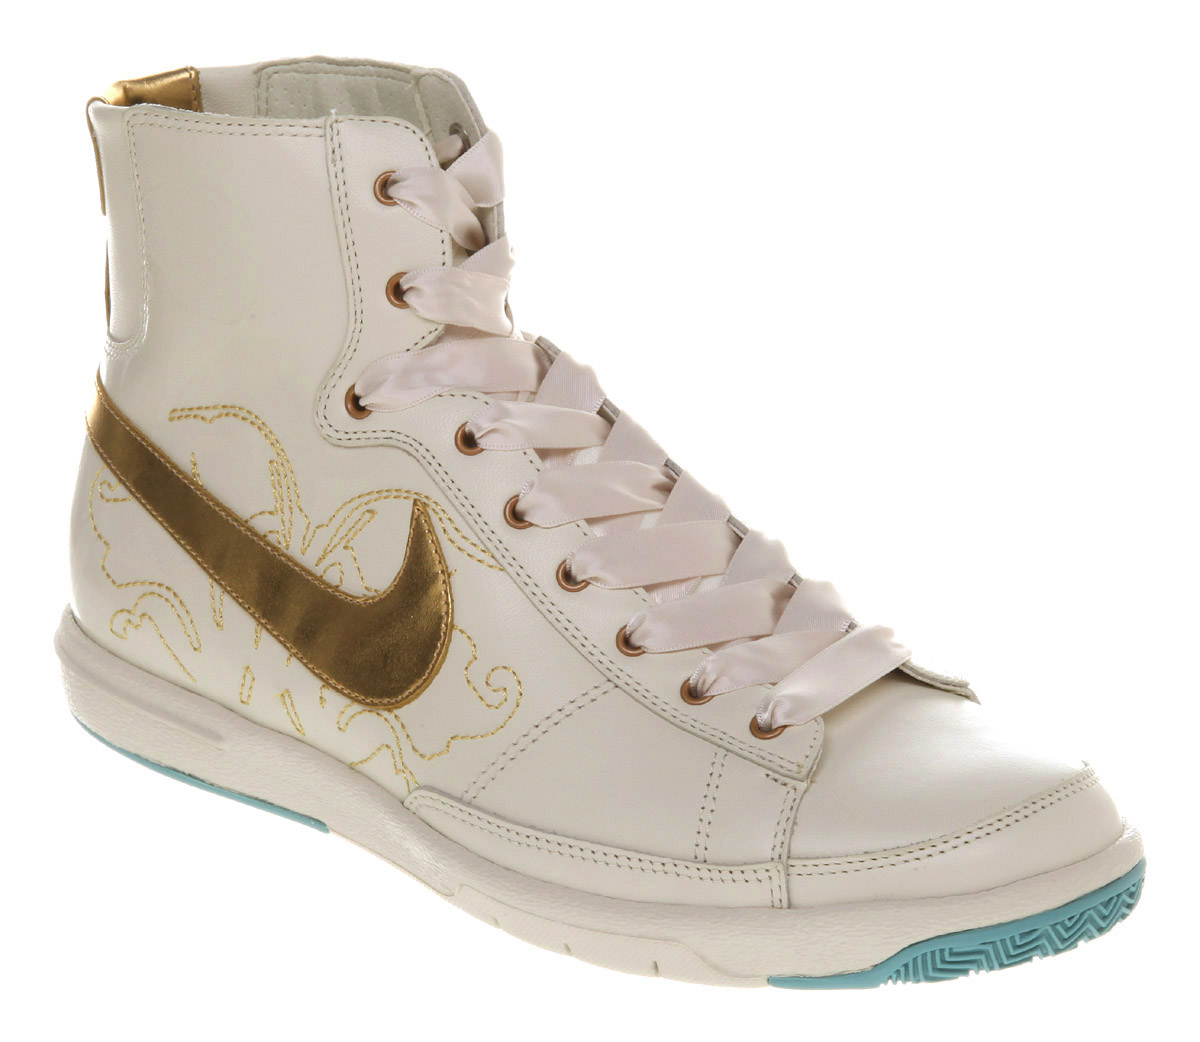 nike dunk sb autruche - Womens Nike Blazer Mid (g) Buff Gold Trainers Shoes | eBay